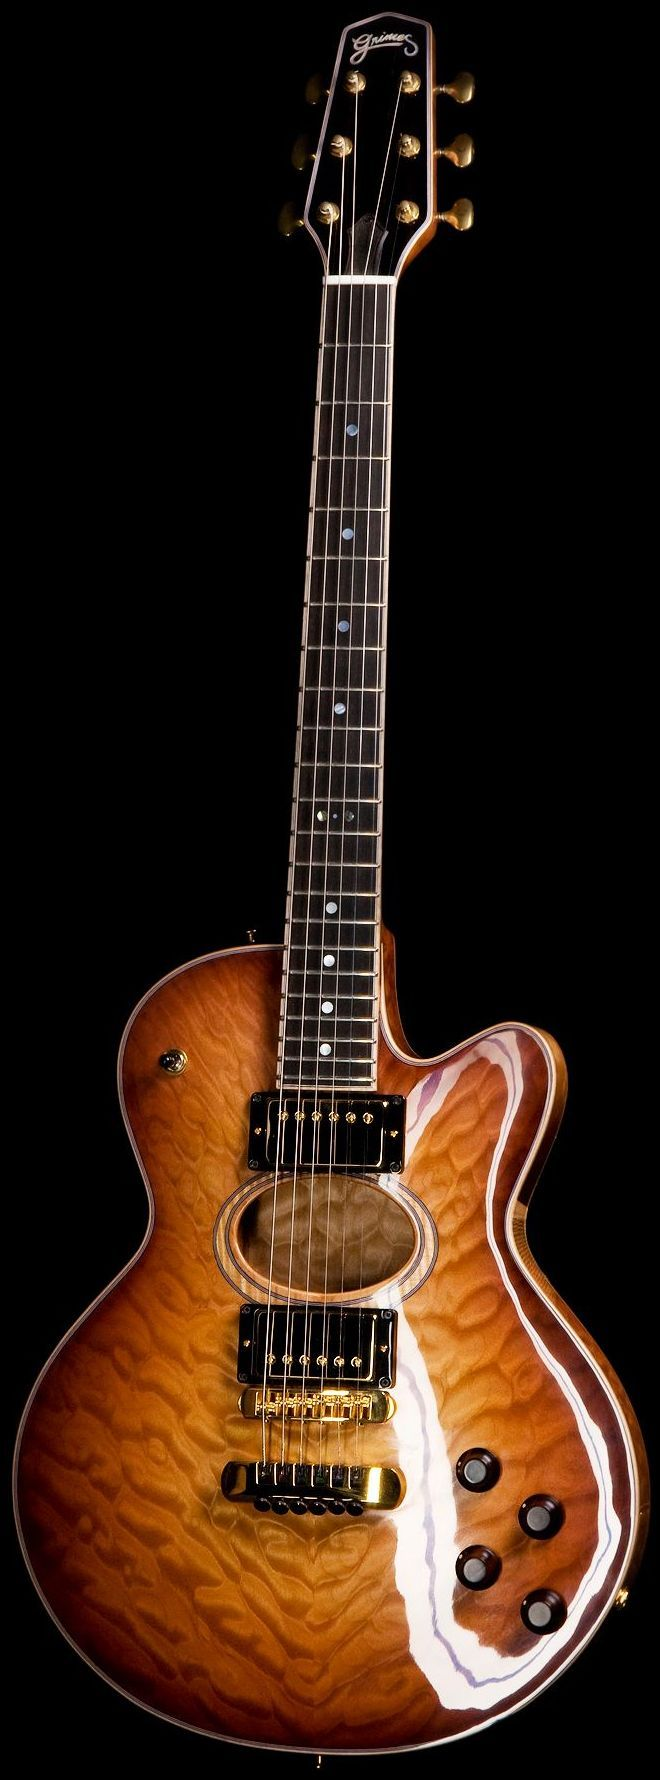 402 best guitars images on pinterest | electric guitars, custom